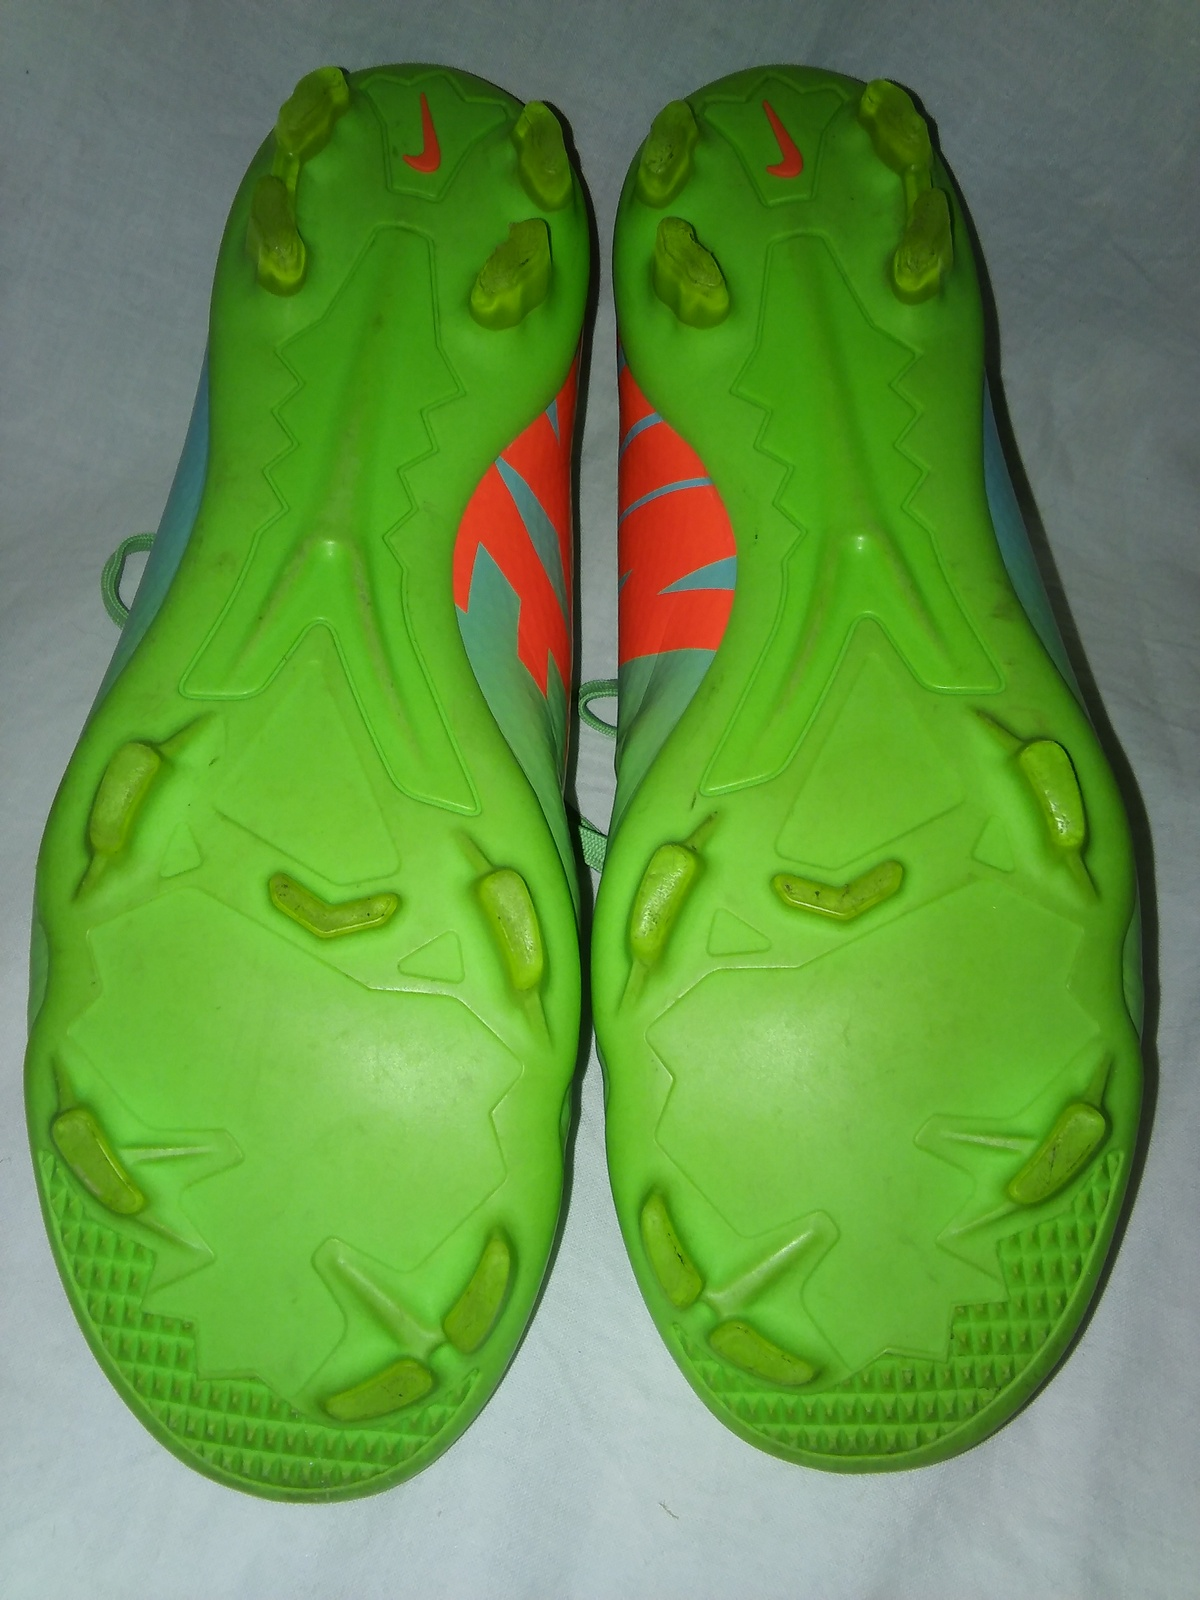 5d309c1c0f38 ... Nike Mercurial Victory TF IV Soccer Shoes Neo Lime Green Size 5 Y 555615 -380 ...